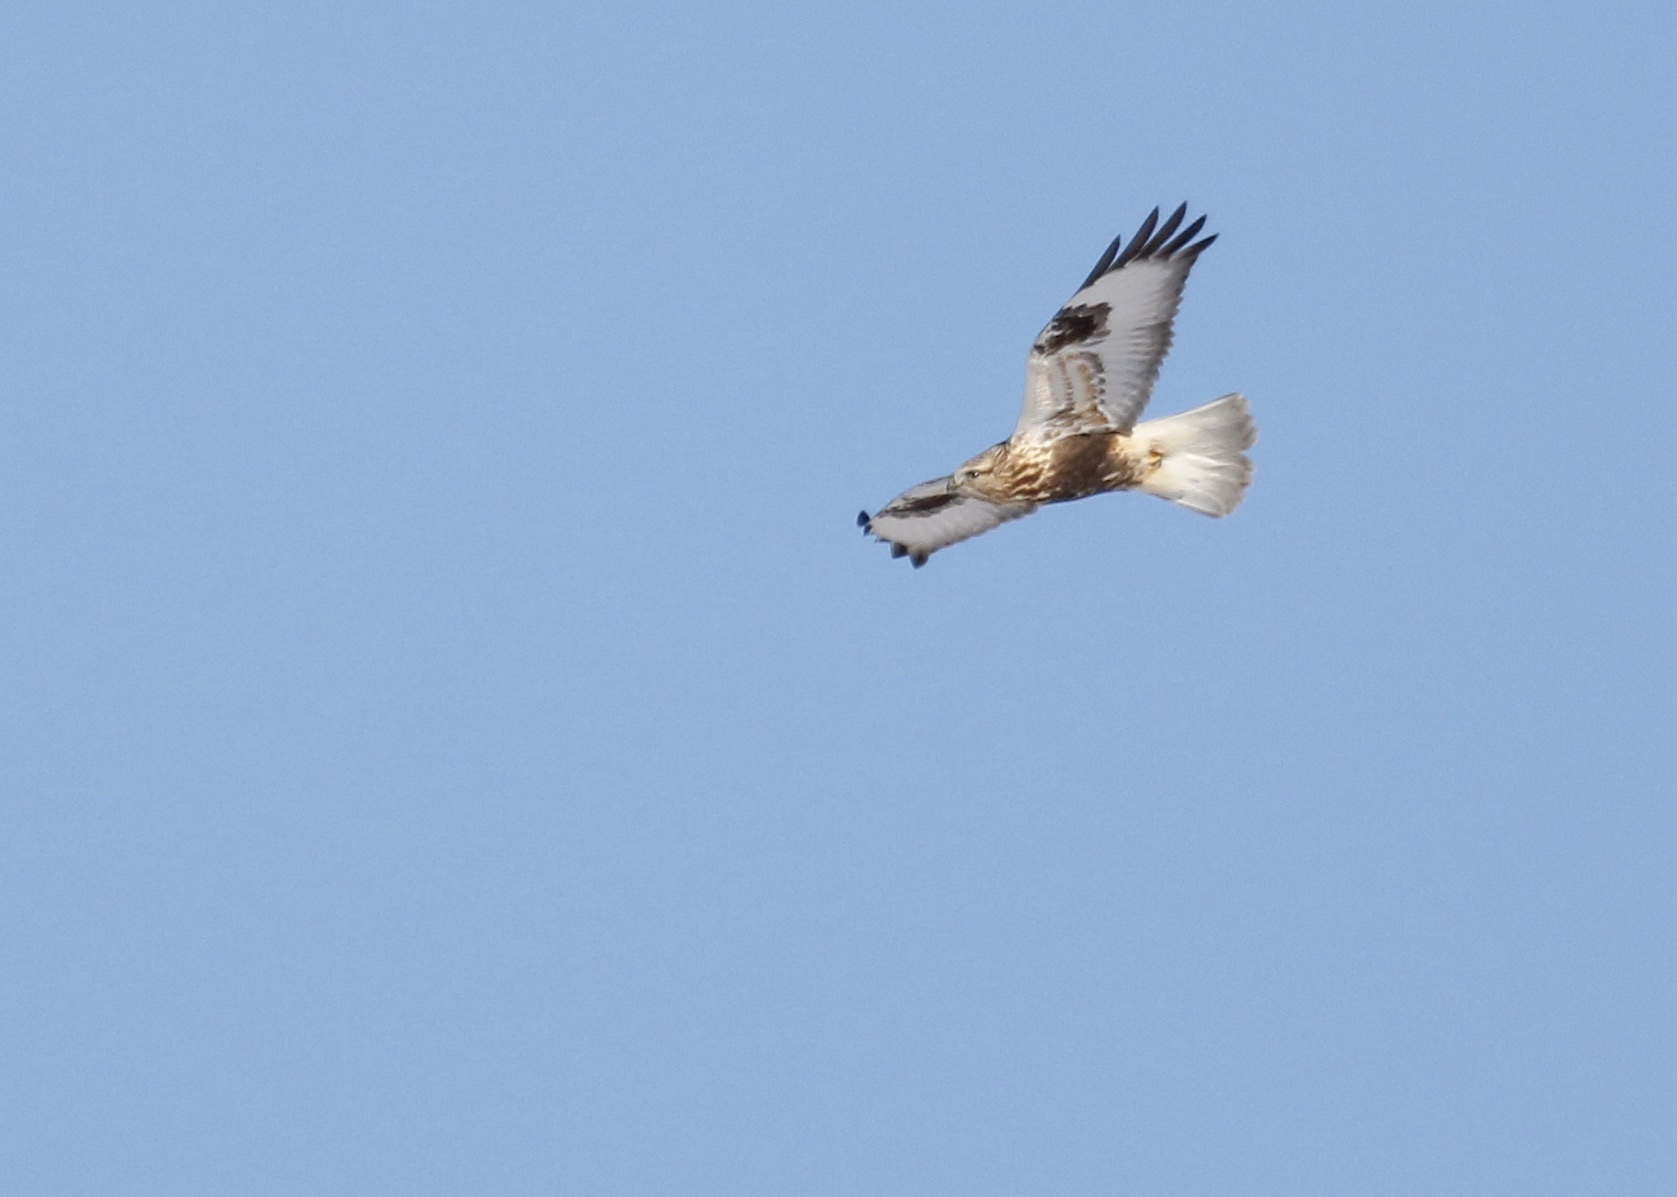 This Rough-legged Hawk stirred up 10 Short-eared Owls